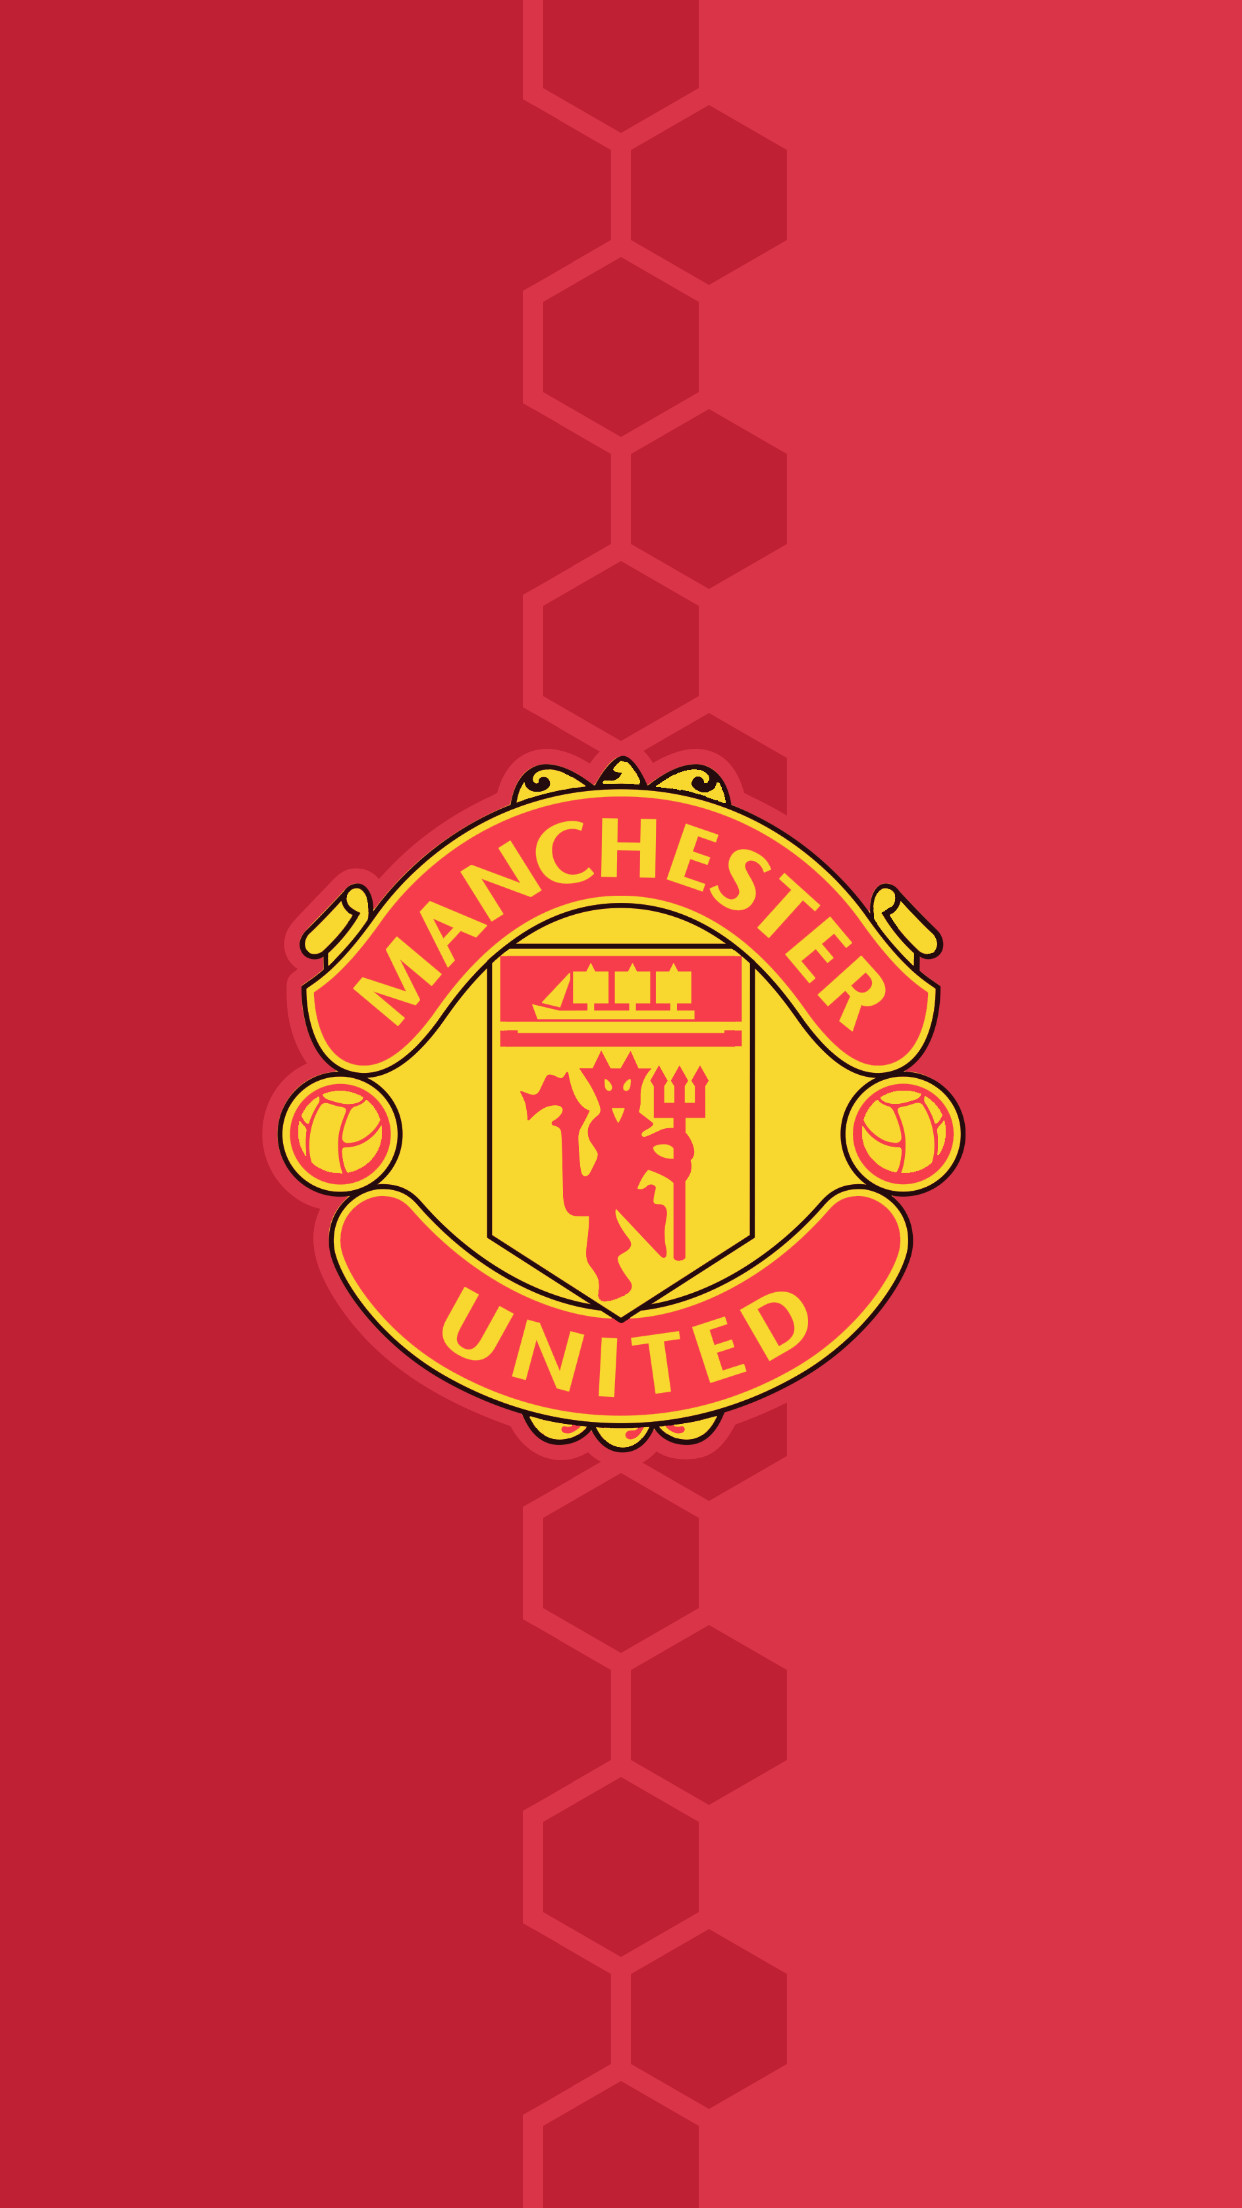 Manchester United Black Logo Wallpaper by DALIBOR manchester 1920×1200 Wallpaper  Manchester United (41 Wallpapers) | Adorable Wallpapers | Pinterest …